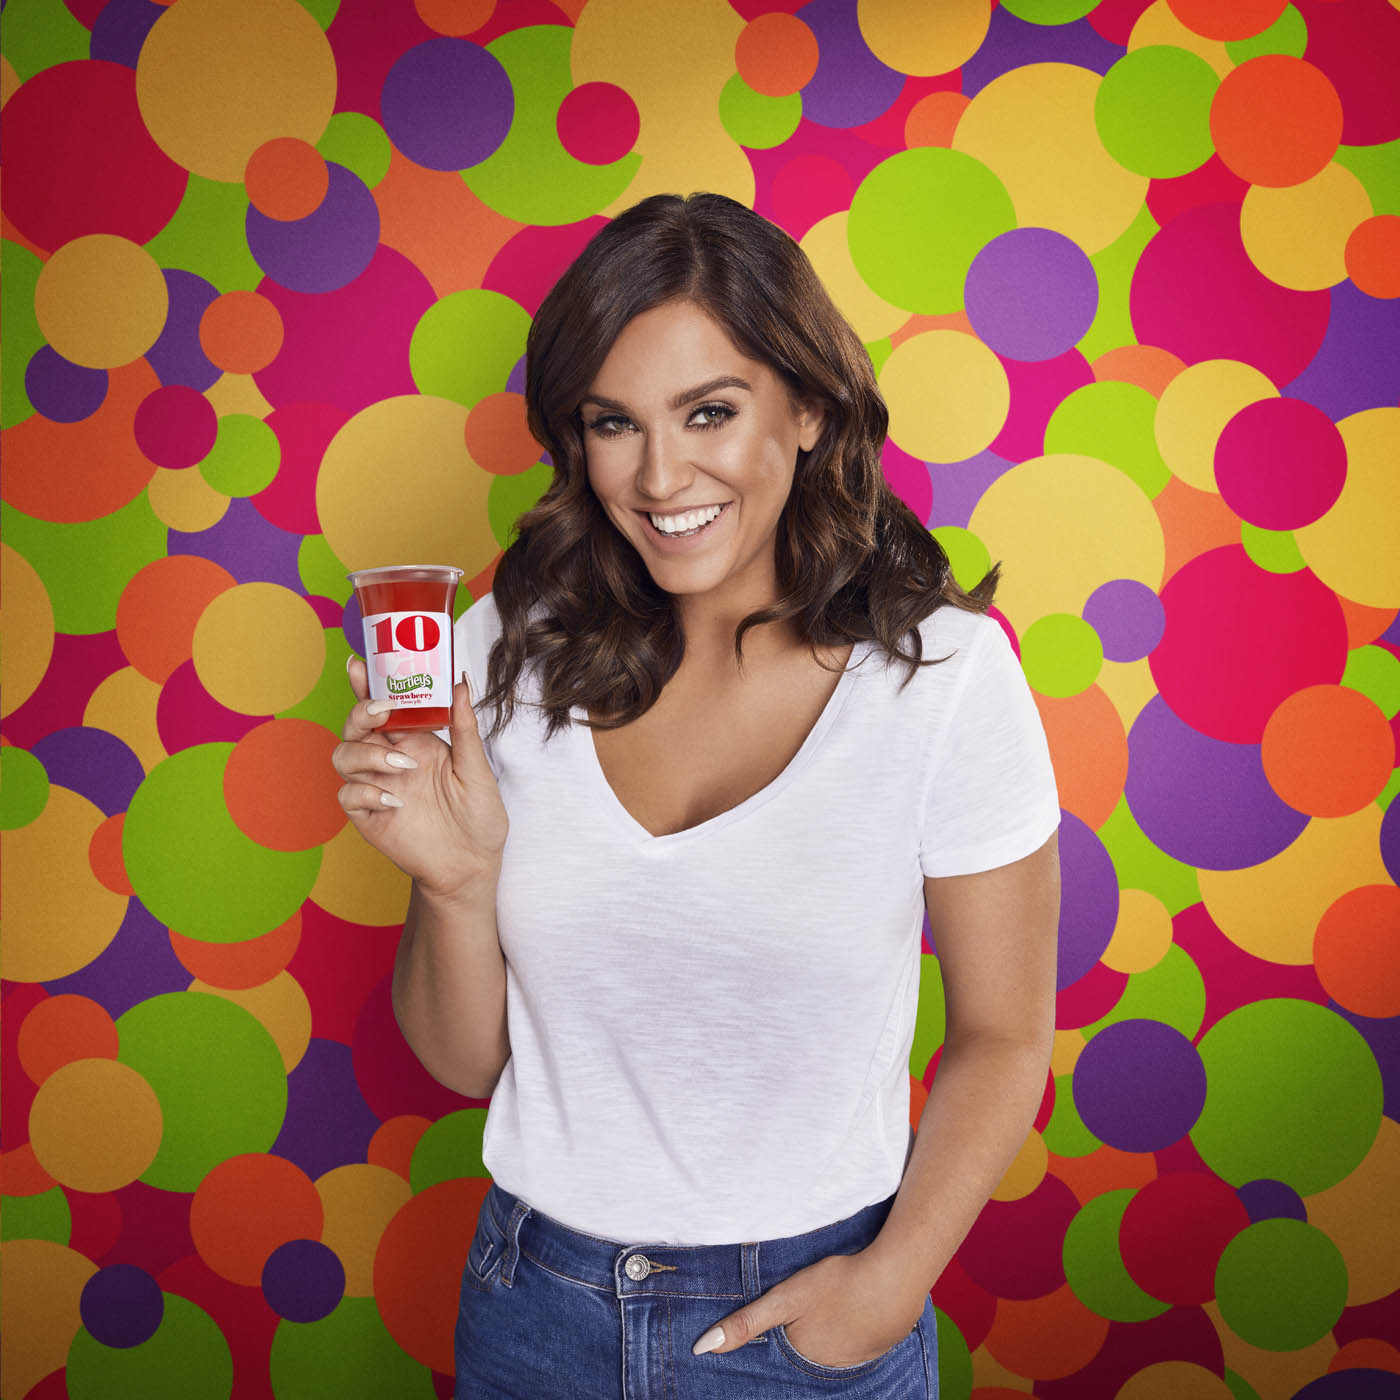 Vicky Pattison shares her diet inspiration as she joins #Team10Cal, dedicated to helping the UK stay on track and avoid a 'diet wobble' this January_jpg.jpg